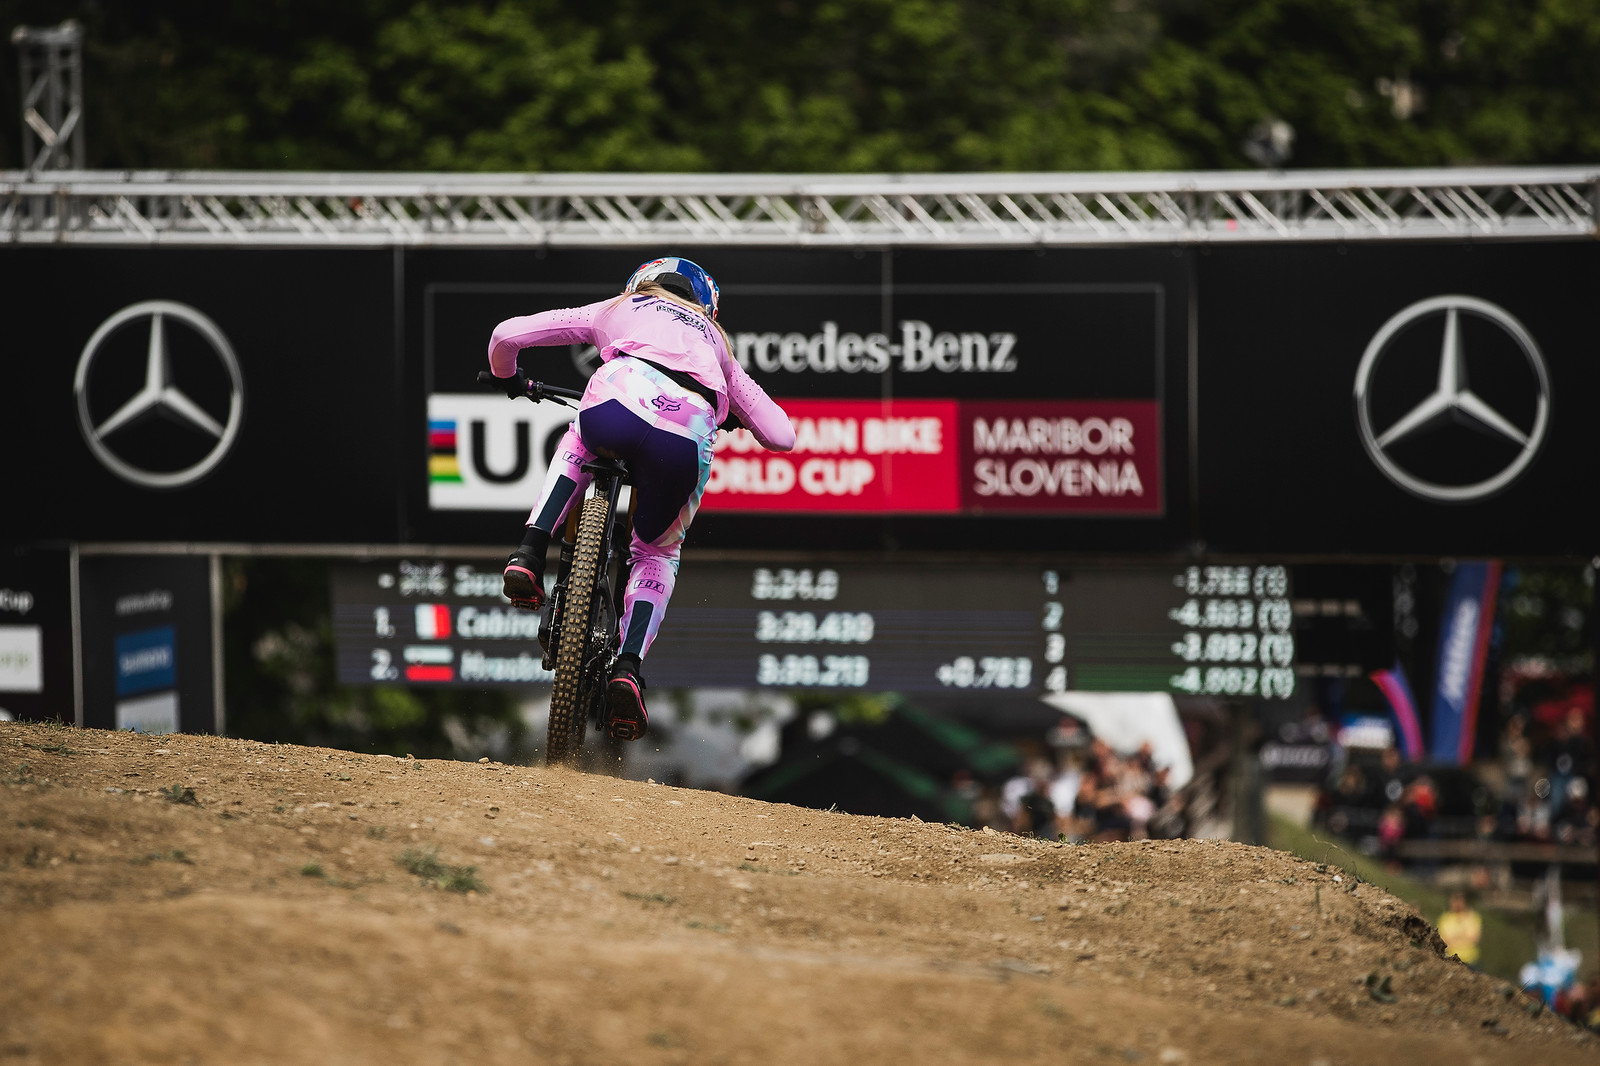 The first round of the 2019 UCI MTB World Cup, Maribor.